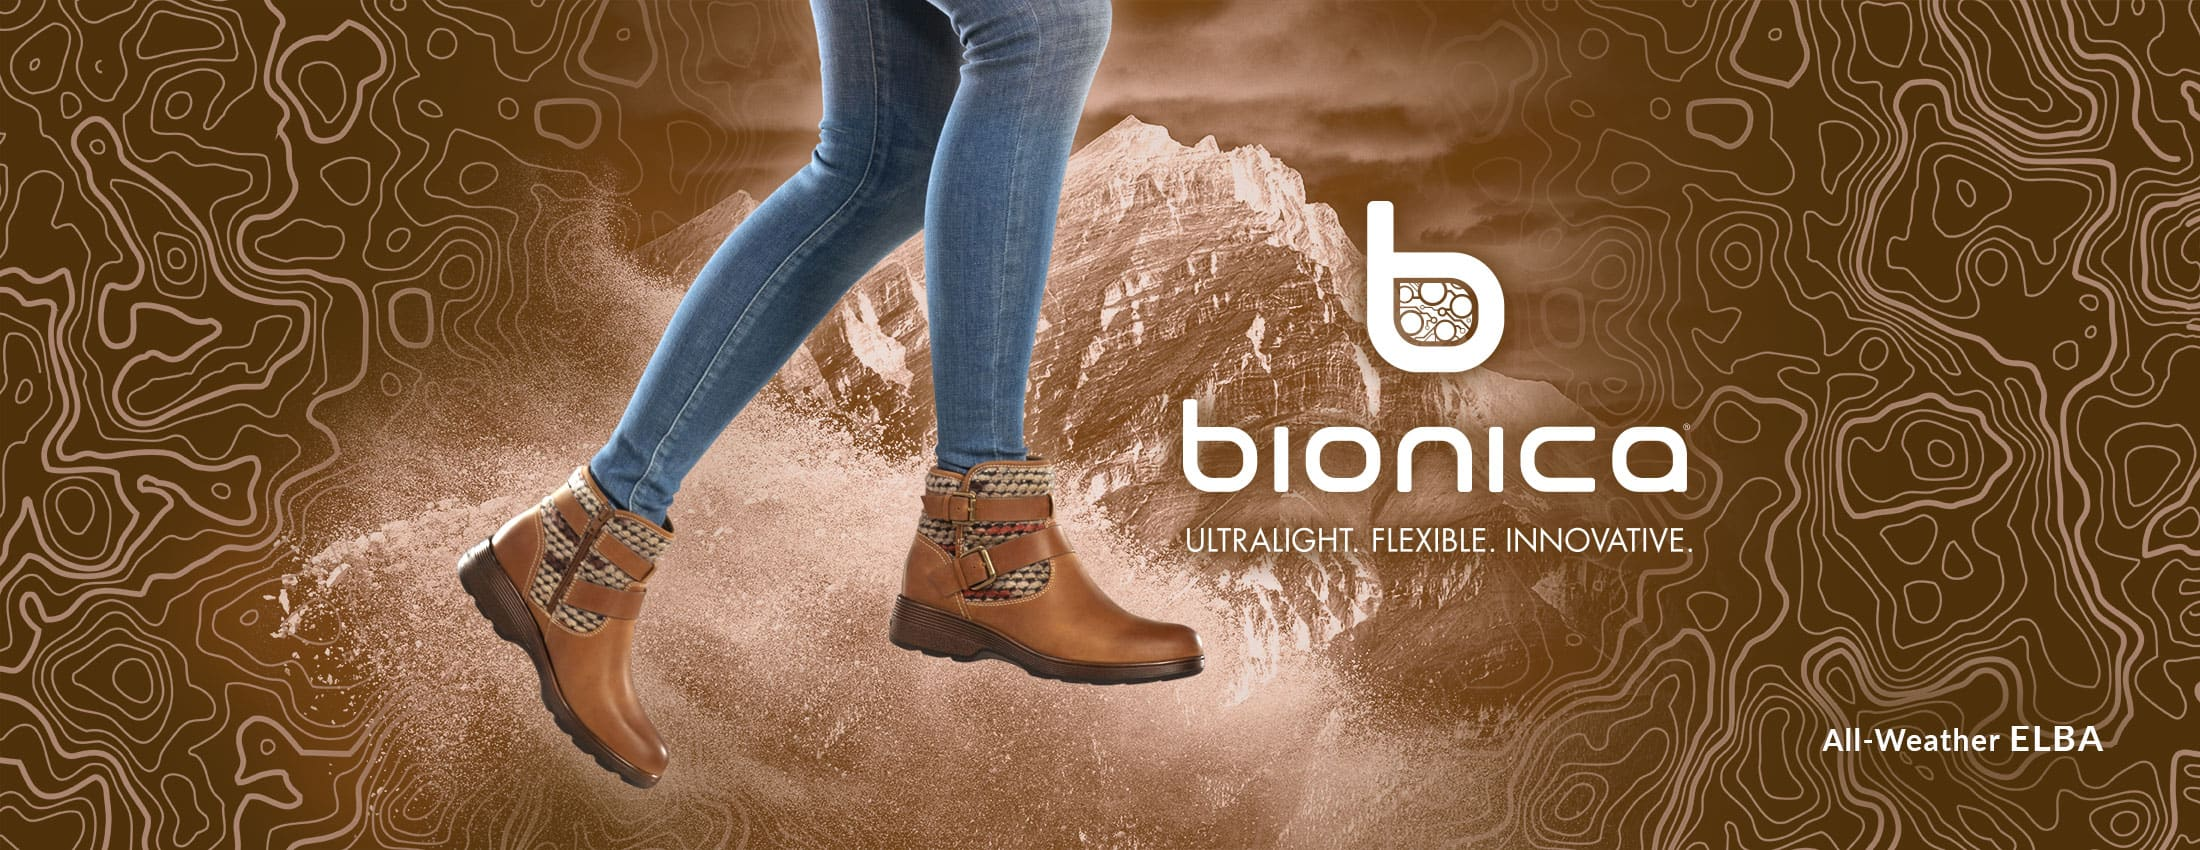 Bionica: Ultralight, Flexible, Innovative. Featured style: All-Weather Elba boot, shown in Almond Tan.  Shop Elba now